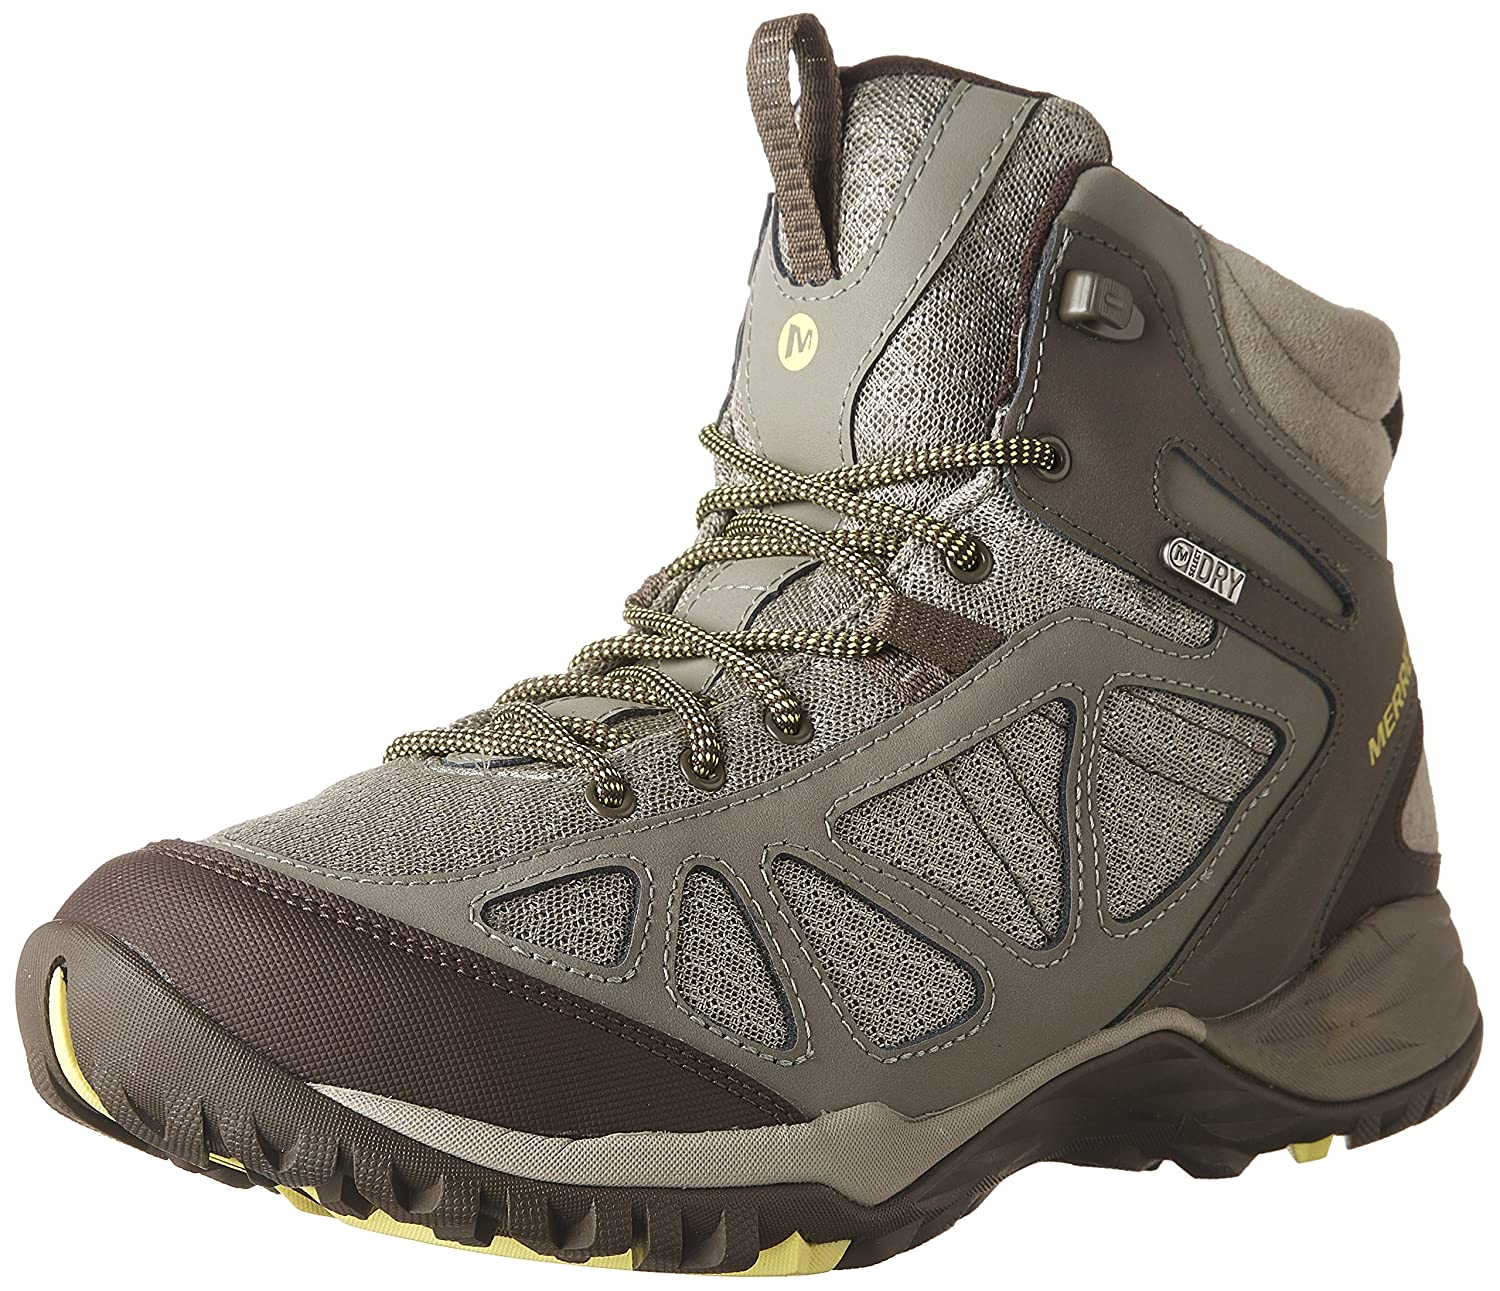 Merrell Women's Siren Sport Q2 Mid Waterproof Hiking Boot B01HFQAKN8 9.5 W US|Dusty Olive